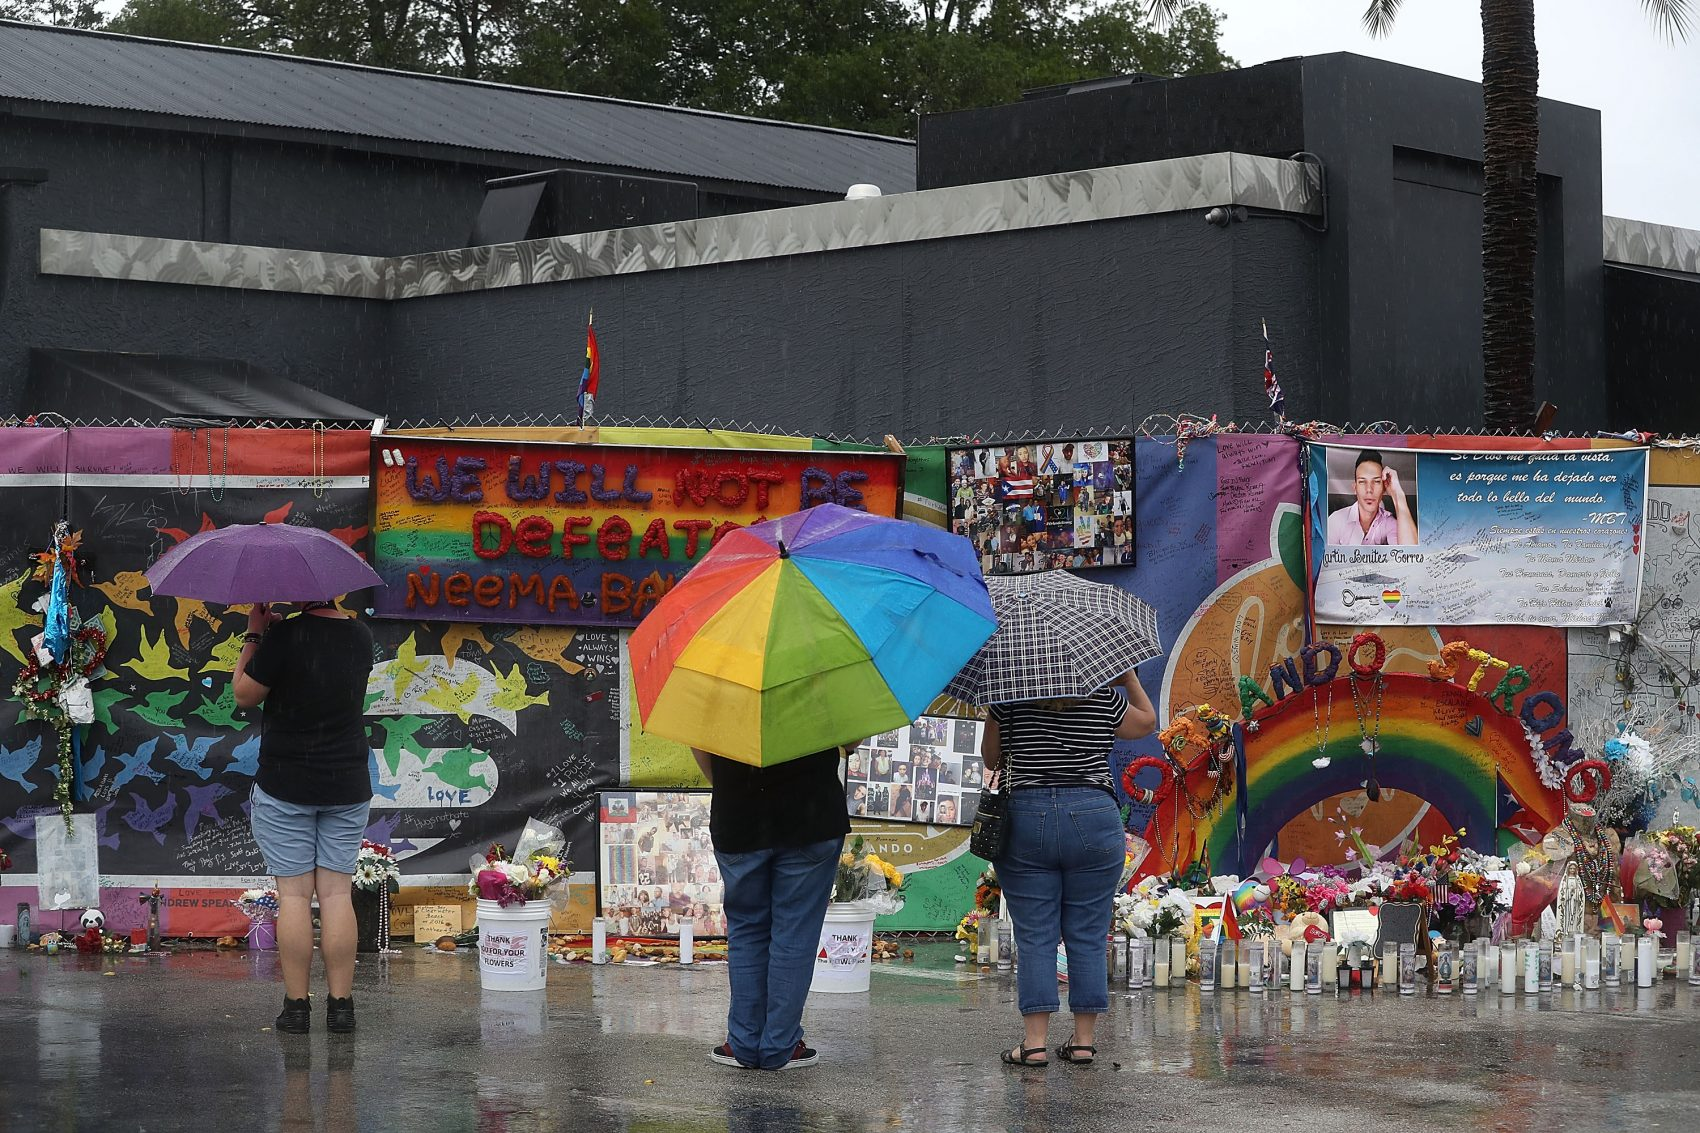 People visit the memorial to the victims of the Pulse nightclub shooting one day before the one-year anniversary of the shooting on June 11, 2017, in Orlando. (Joe Raedle/Getty Images)